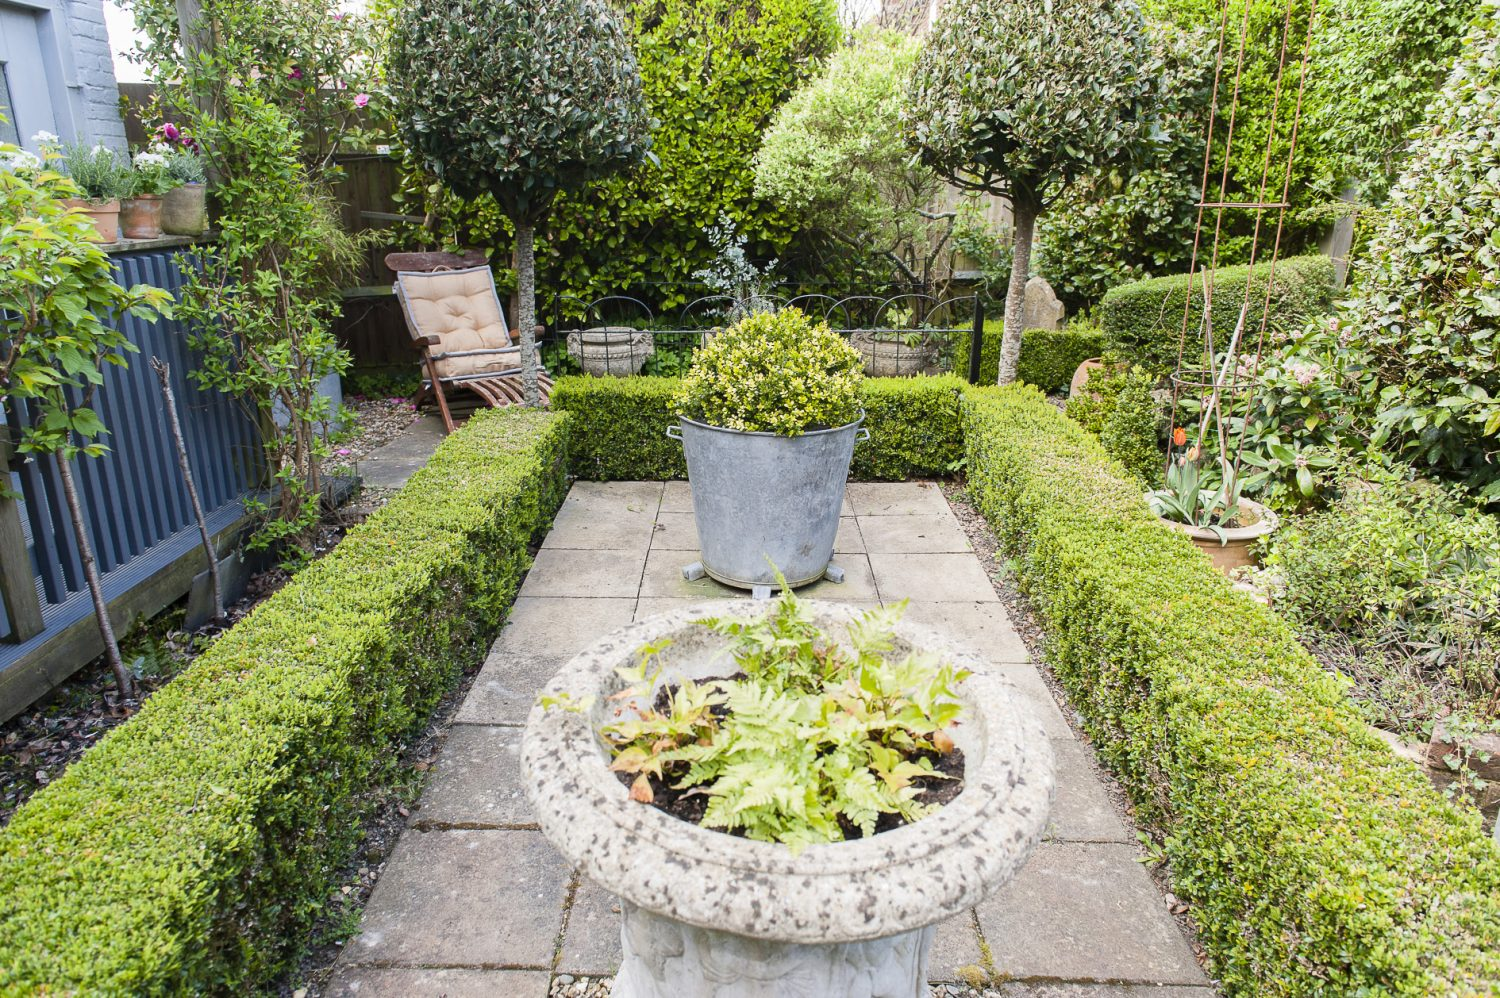 """Evergreen shrubs and topiary help to bring a chic, but verdant intimacy to the outdoor seating area. """"The advantage of using mainly evergreens is that I can rely on it being the same throughout the year. And then I can add seasonal colour in pots."""" In the winter the whole garden twinkles with fairy lights and makes a magical space to look out into."""